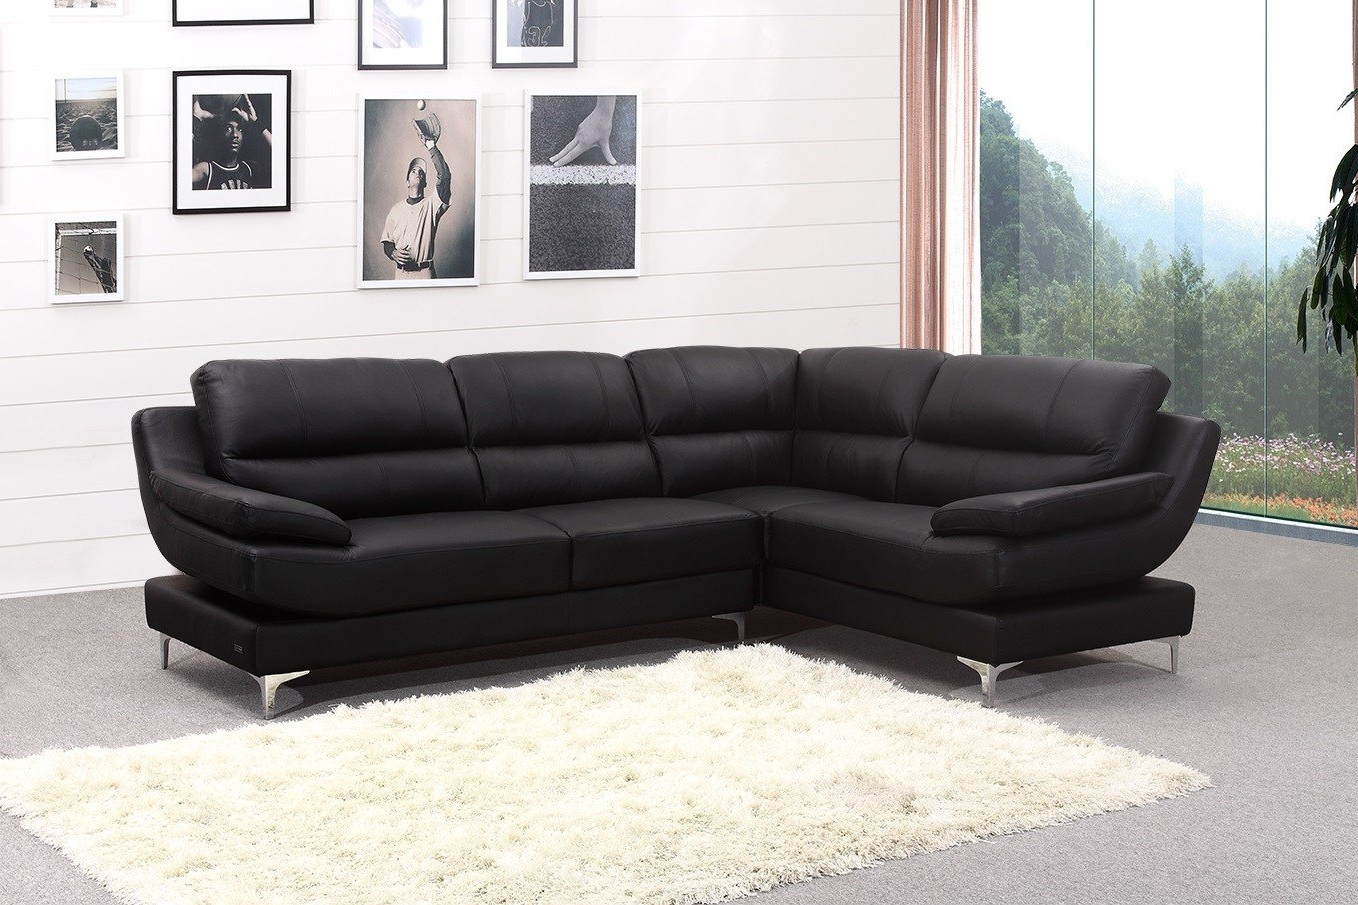 Widely Used Leather Corner Sofas Inside New Ideas Leather Corner Sofas With Corner Sofa Leather Brown (View 9 of 15)